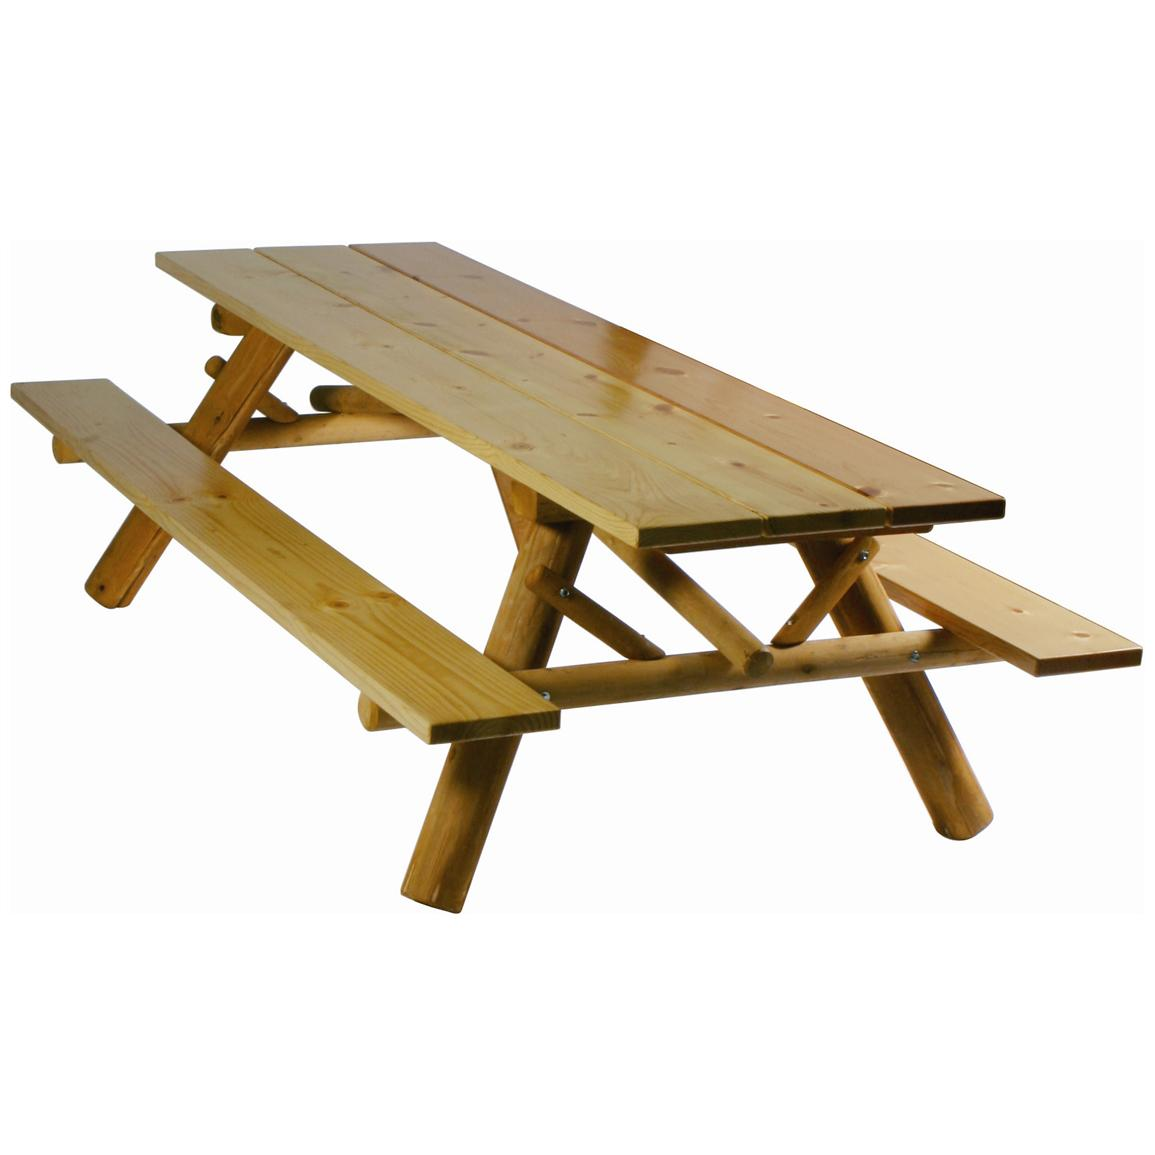 Picnic Table clipart lawn chairs Works Furniture Table Valley Cedar